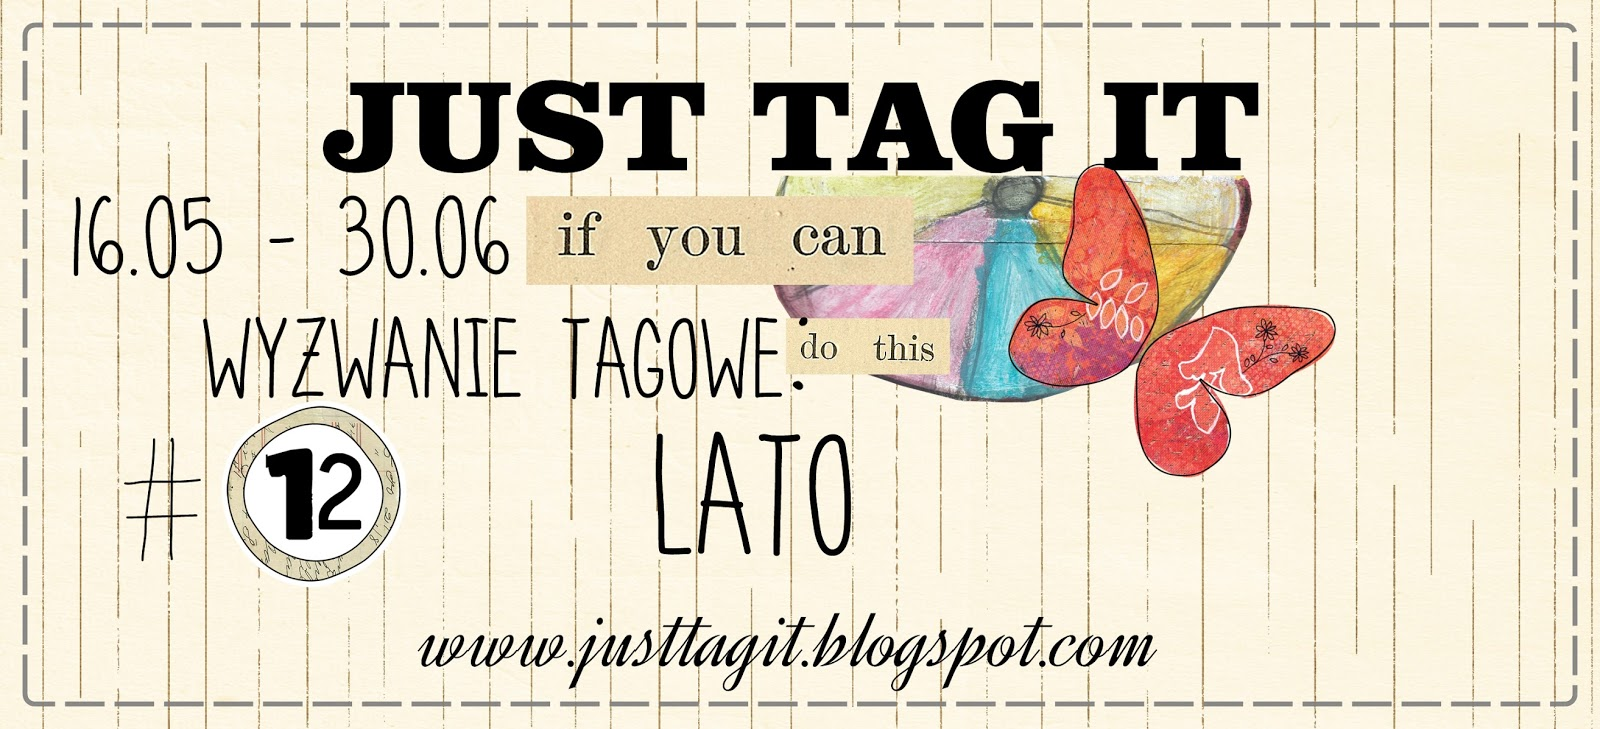 Just Tag It! Challenge #12